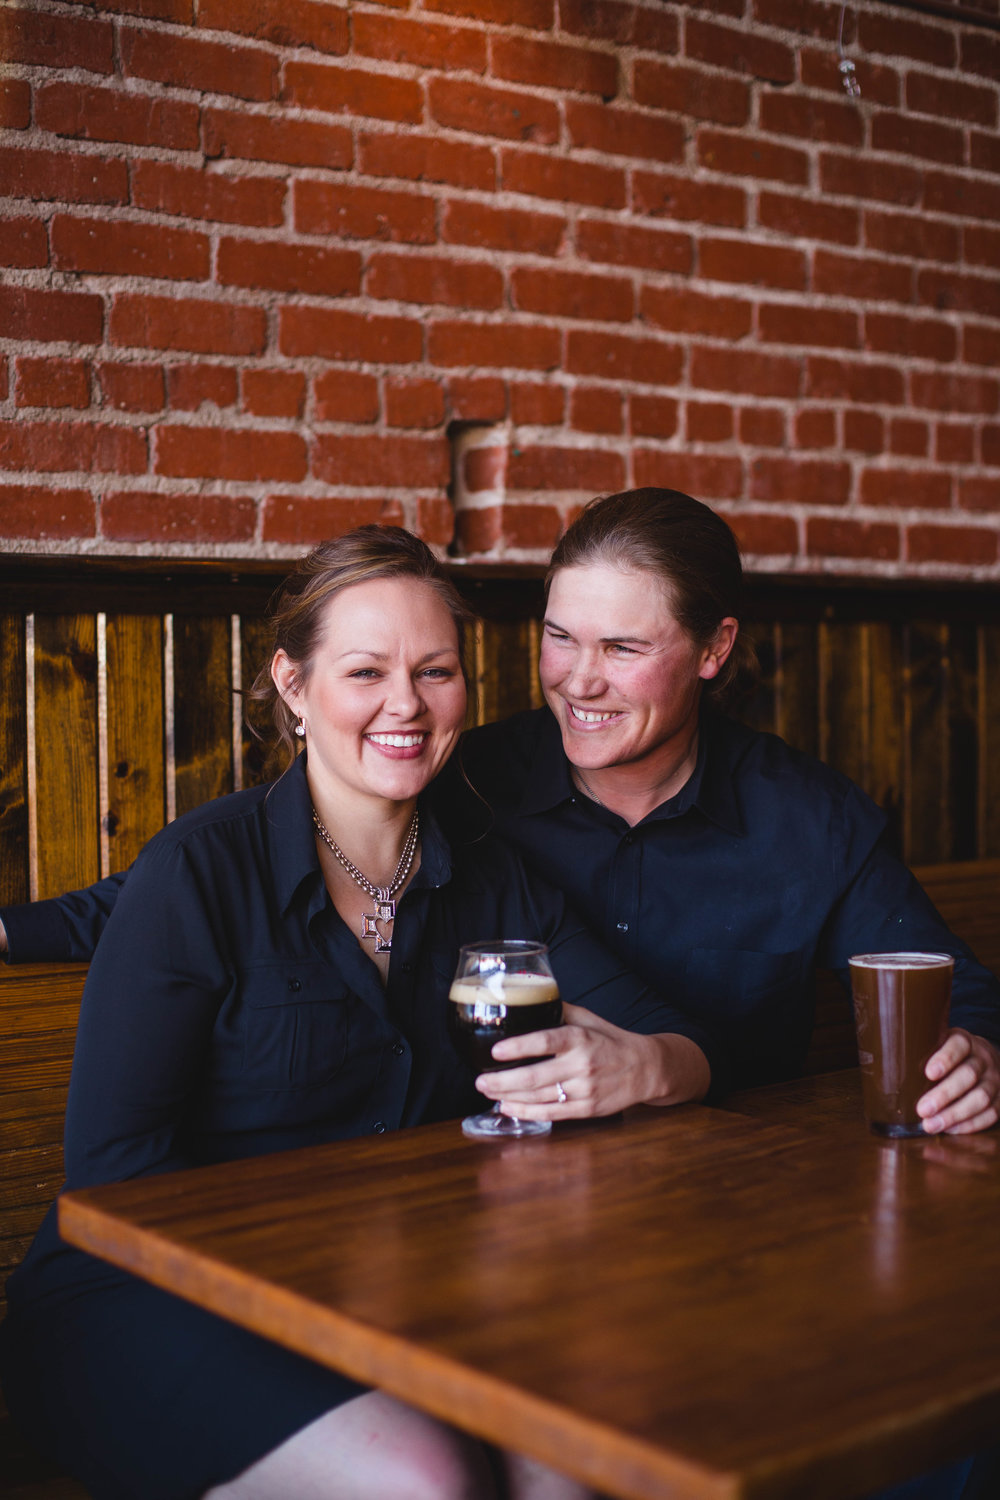 Microbrewery LGBTQ engagement in Wichita Kansas by CJF Photography